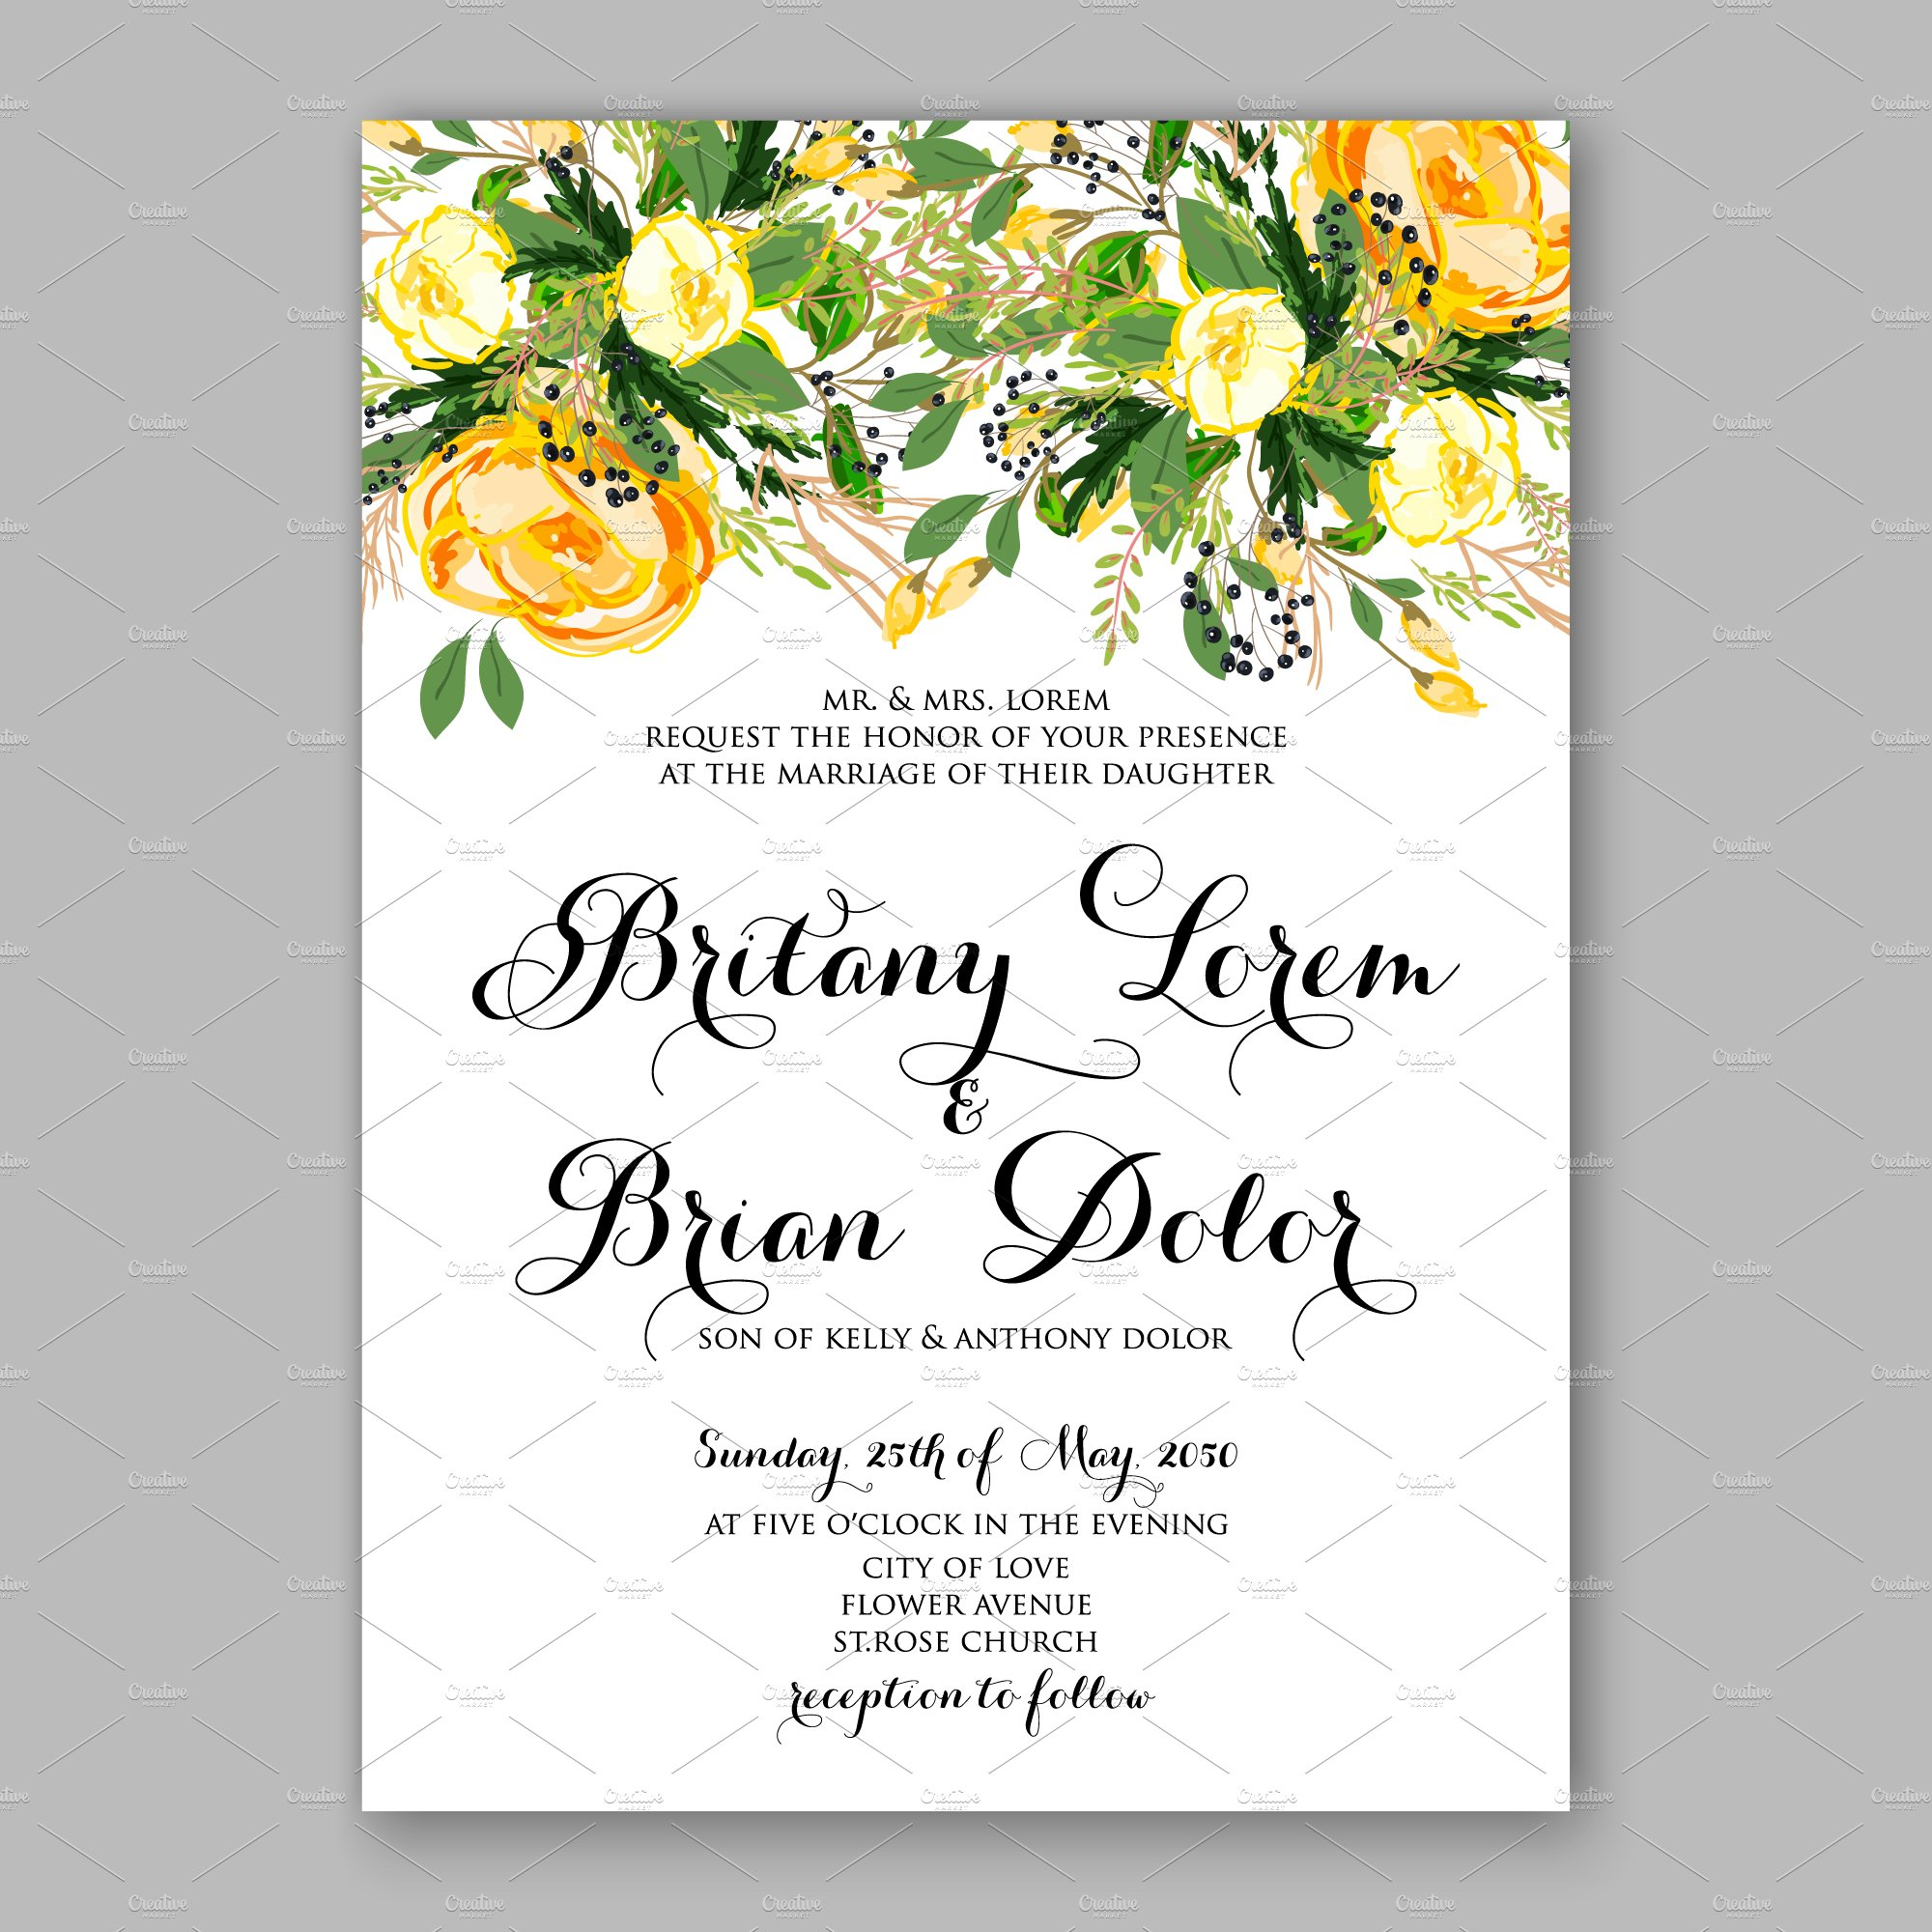 Wedding invitation yellow rose invitation templates for Yellow bridal shower invitations